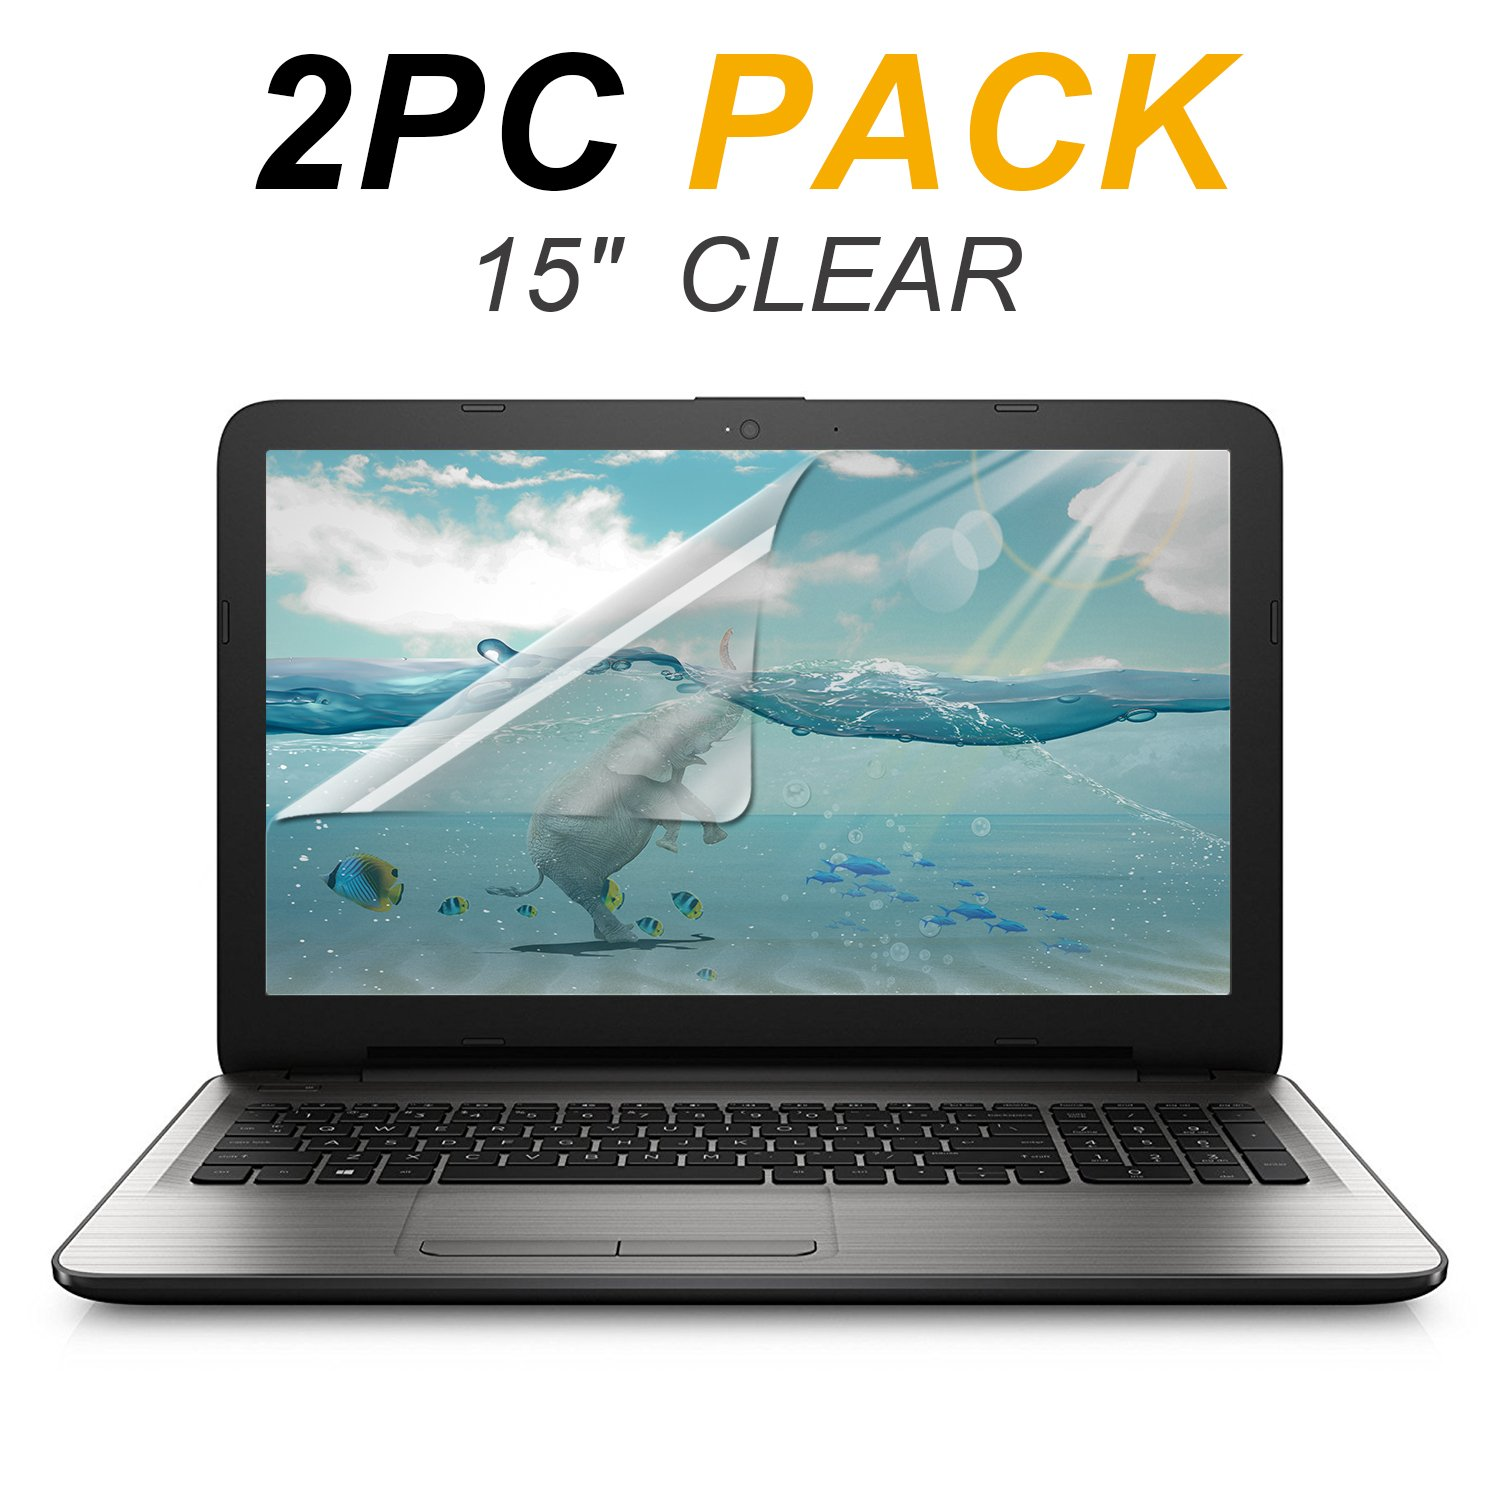 2 Pack FORITO 11.6 Inch HD Clear Screen Protector Compatible for Acer Chromebook R11 CB5-132 CB3-131, ASUS Chromebook C201 C202SA, Samsung 11.6 Chromebook Dell i3162 i3168 i3169, HP Chromebook 11 F-SUP11P